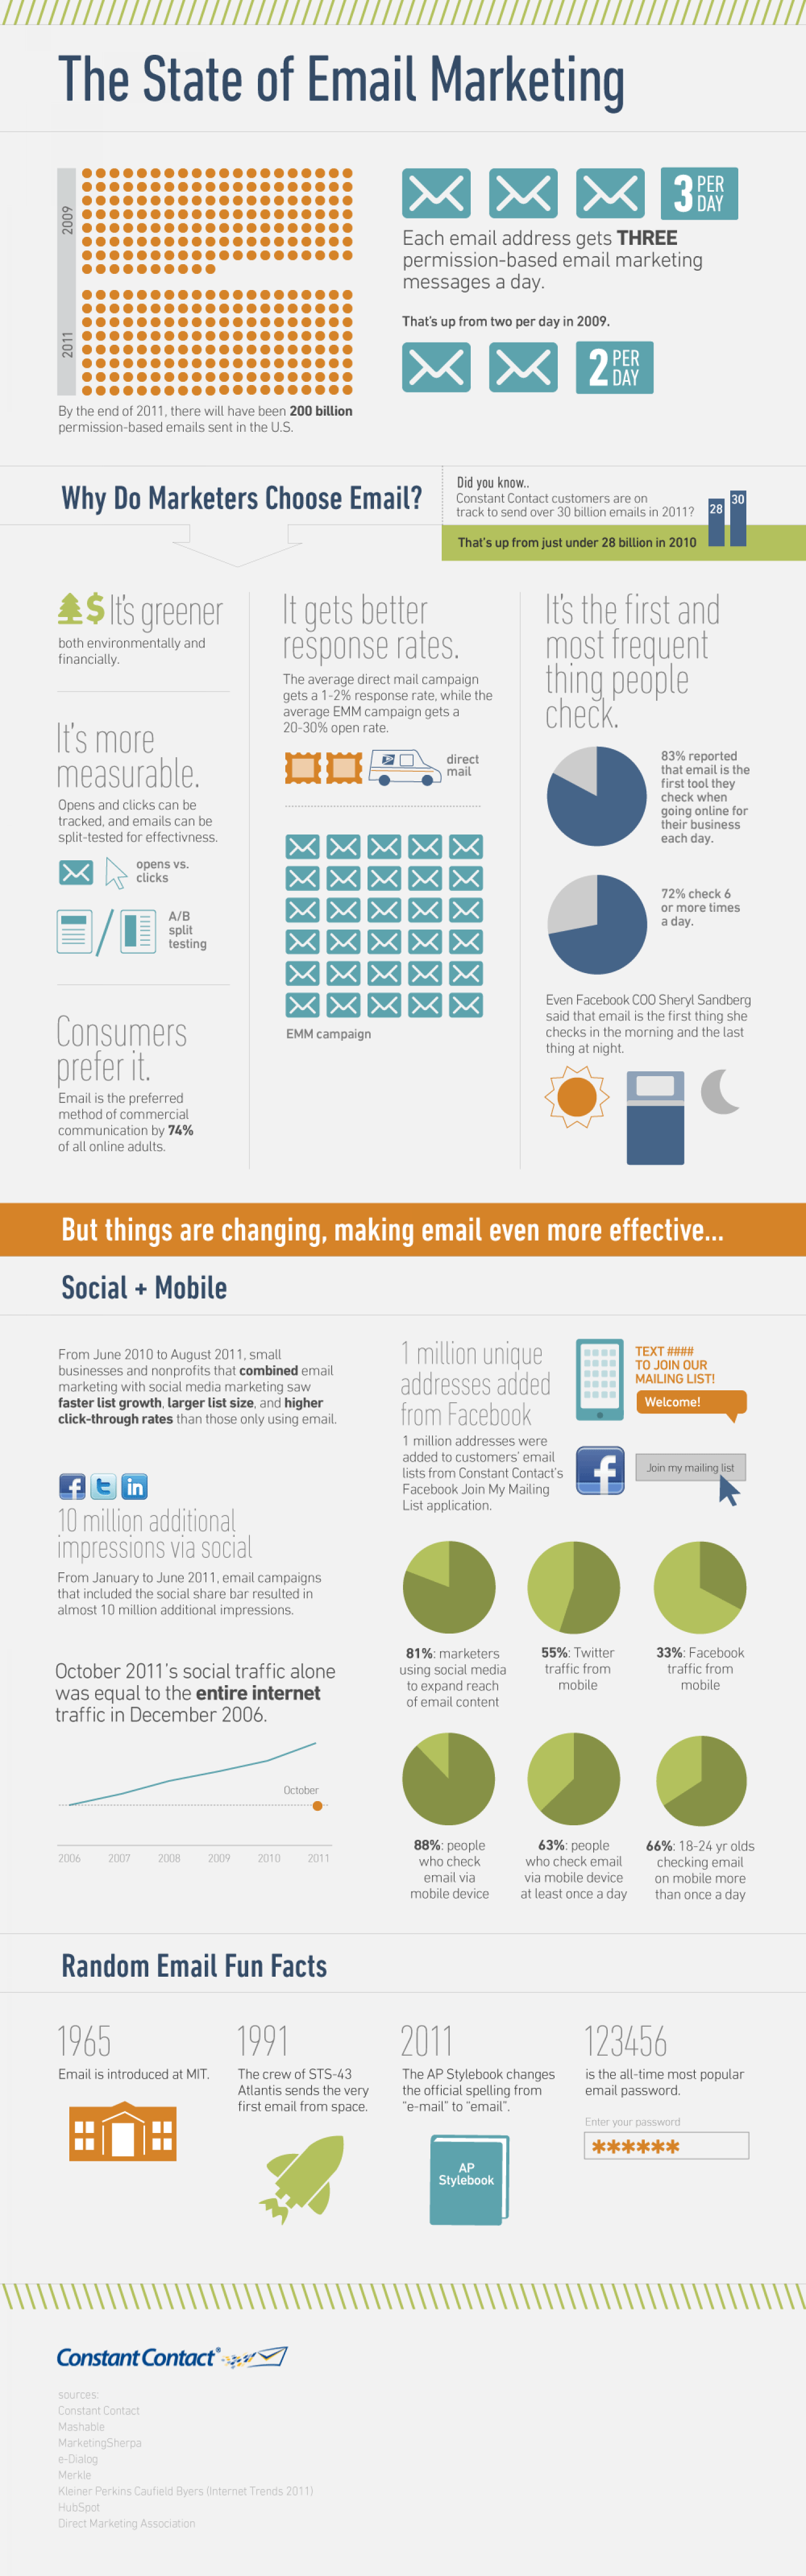 The State of Email Marketing Infographic